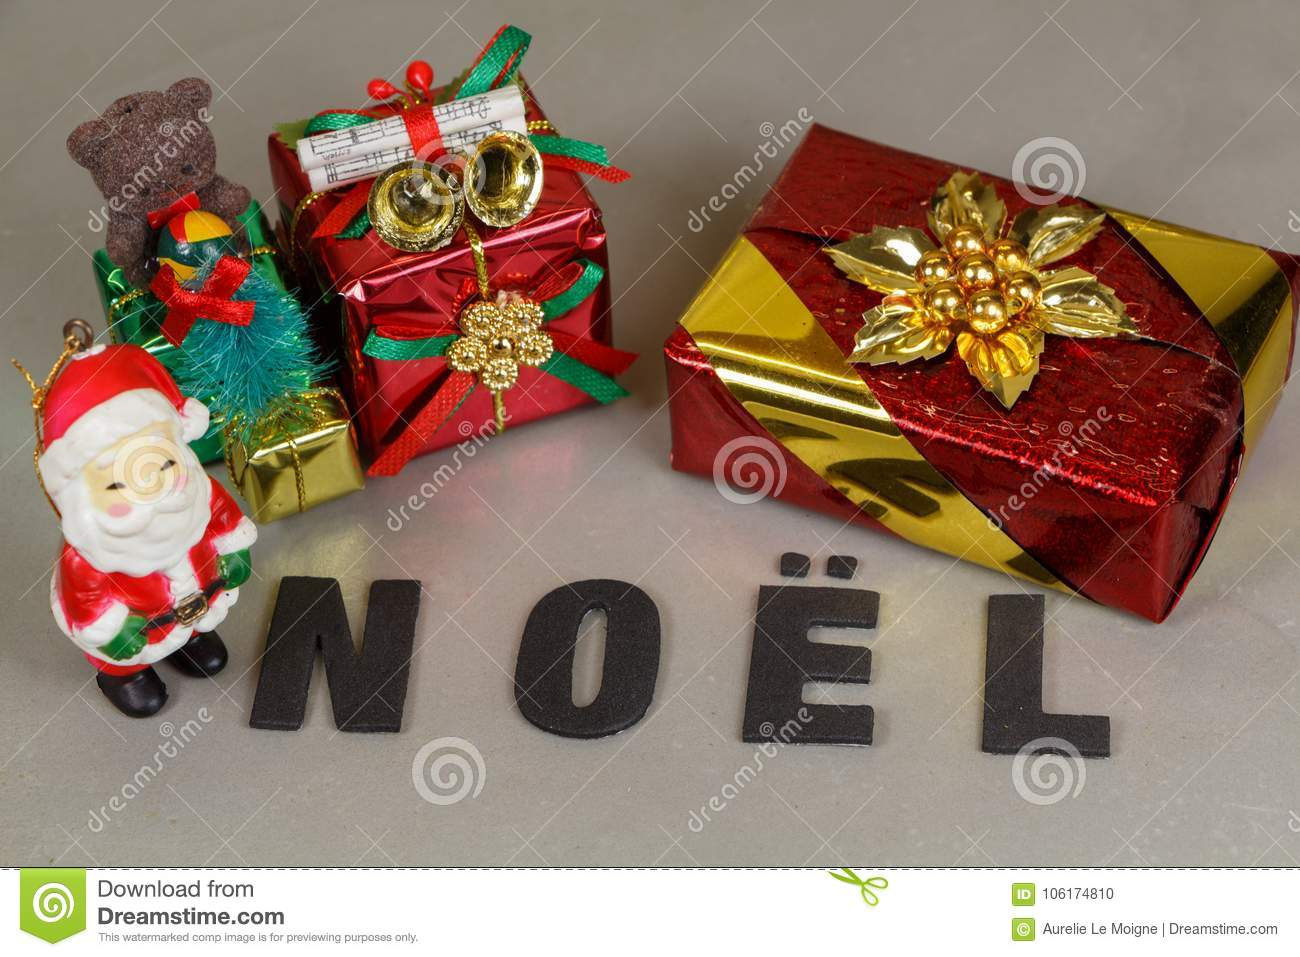 Santa Claus Figurine With Gifts And The Word Christmas Stock Photo ...